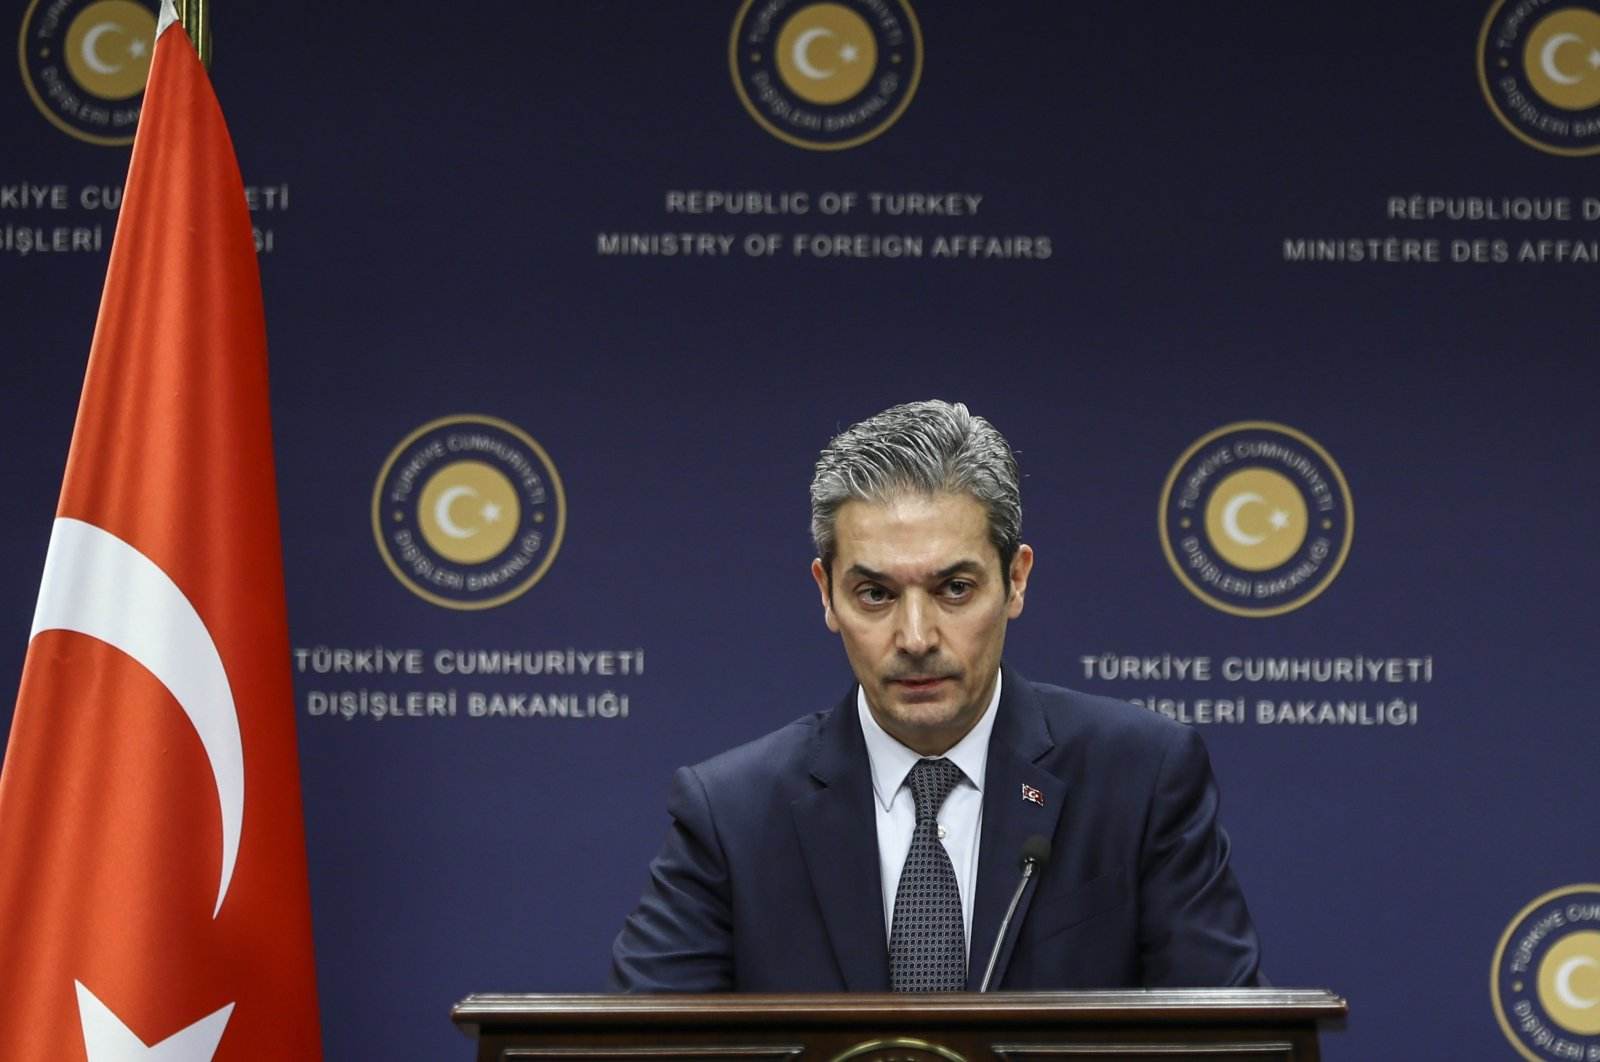 Foreign Ministry Spokesperson Hami Aksoy speaks to reporters at a news conference in the capital Ankara on March 1, 2018. (AA File Photo)